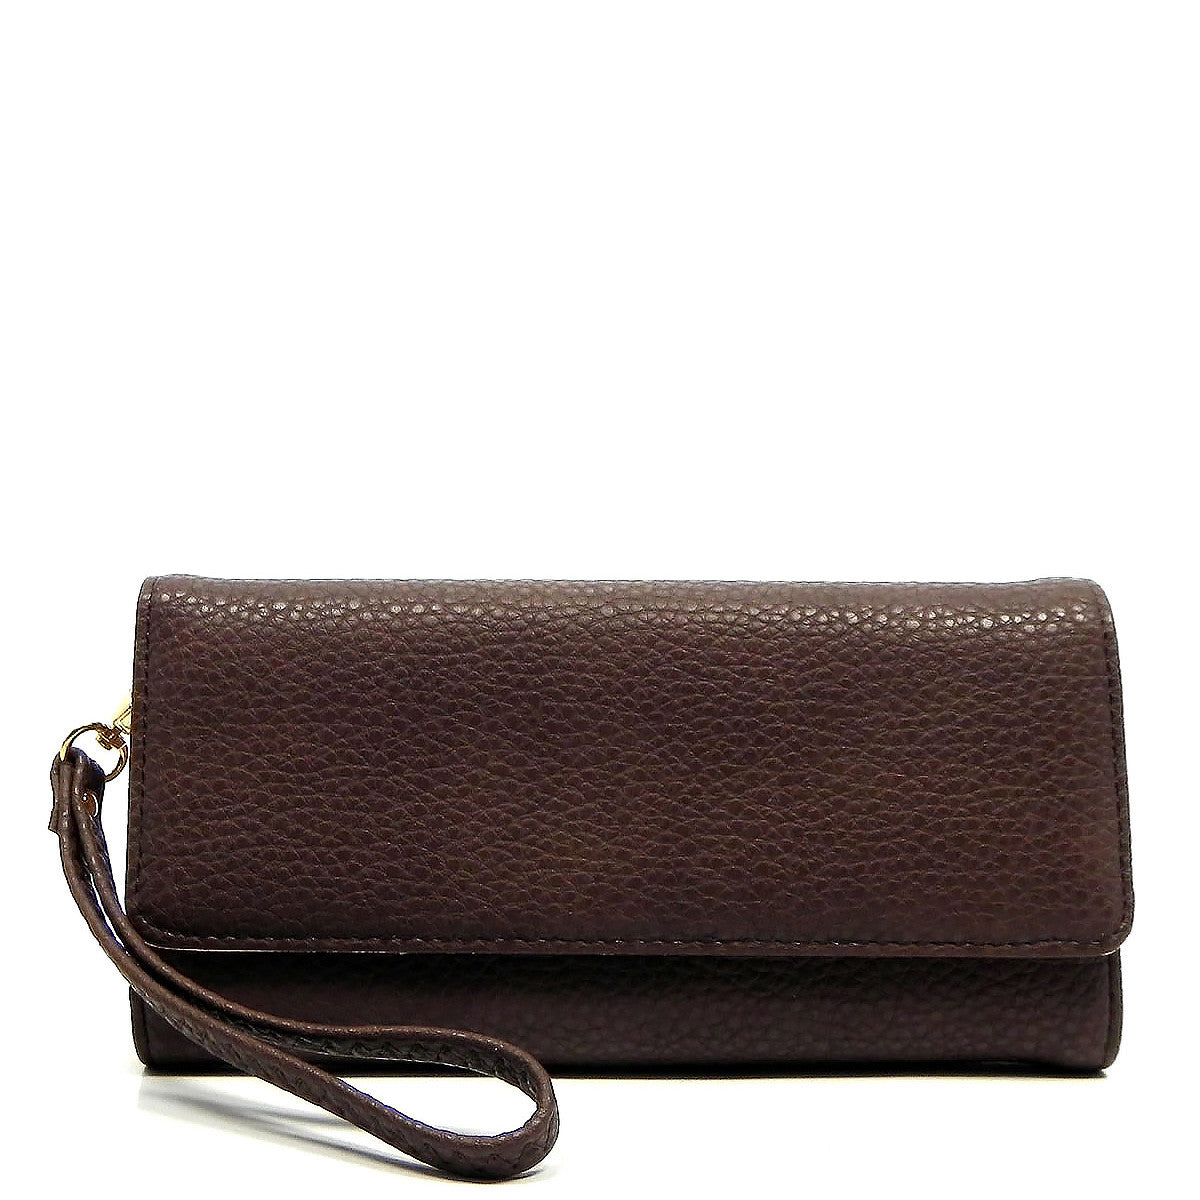 Marley Wristlet in Chocolate